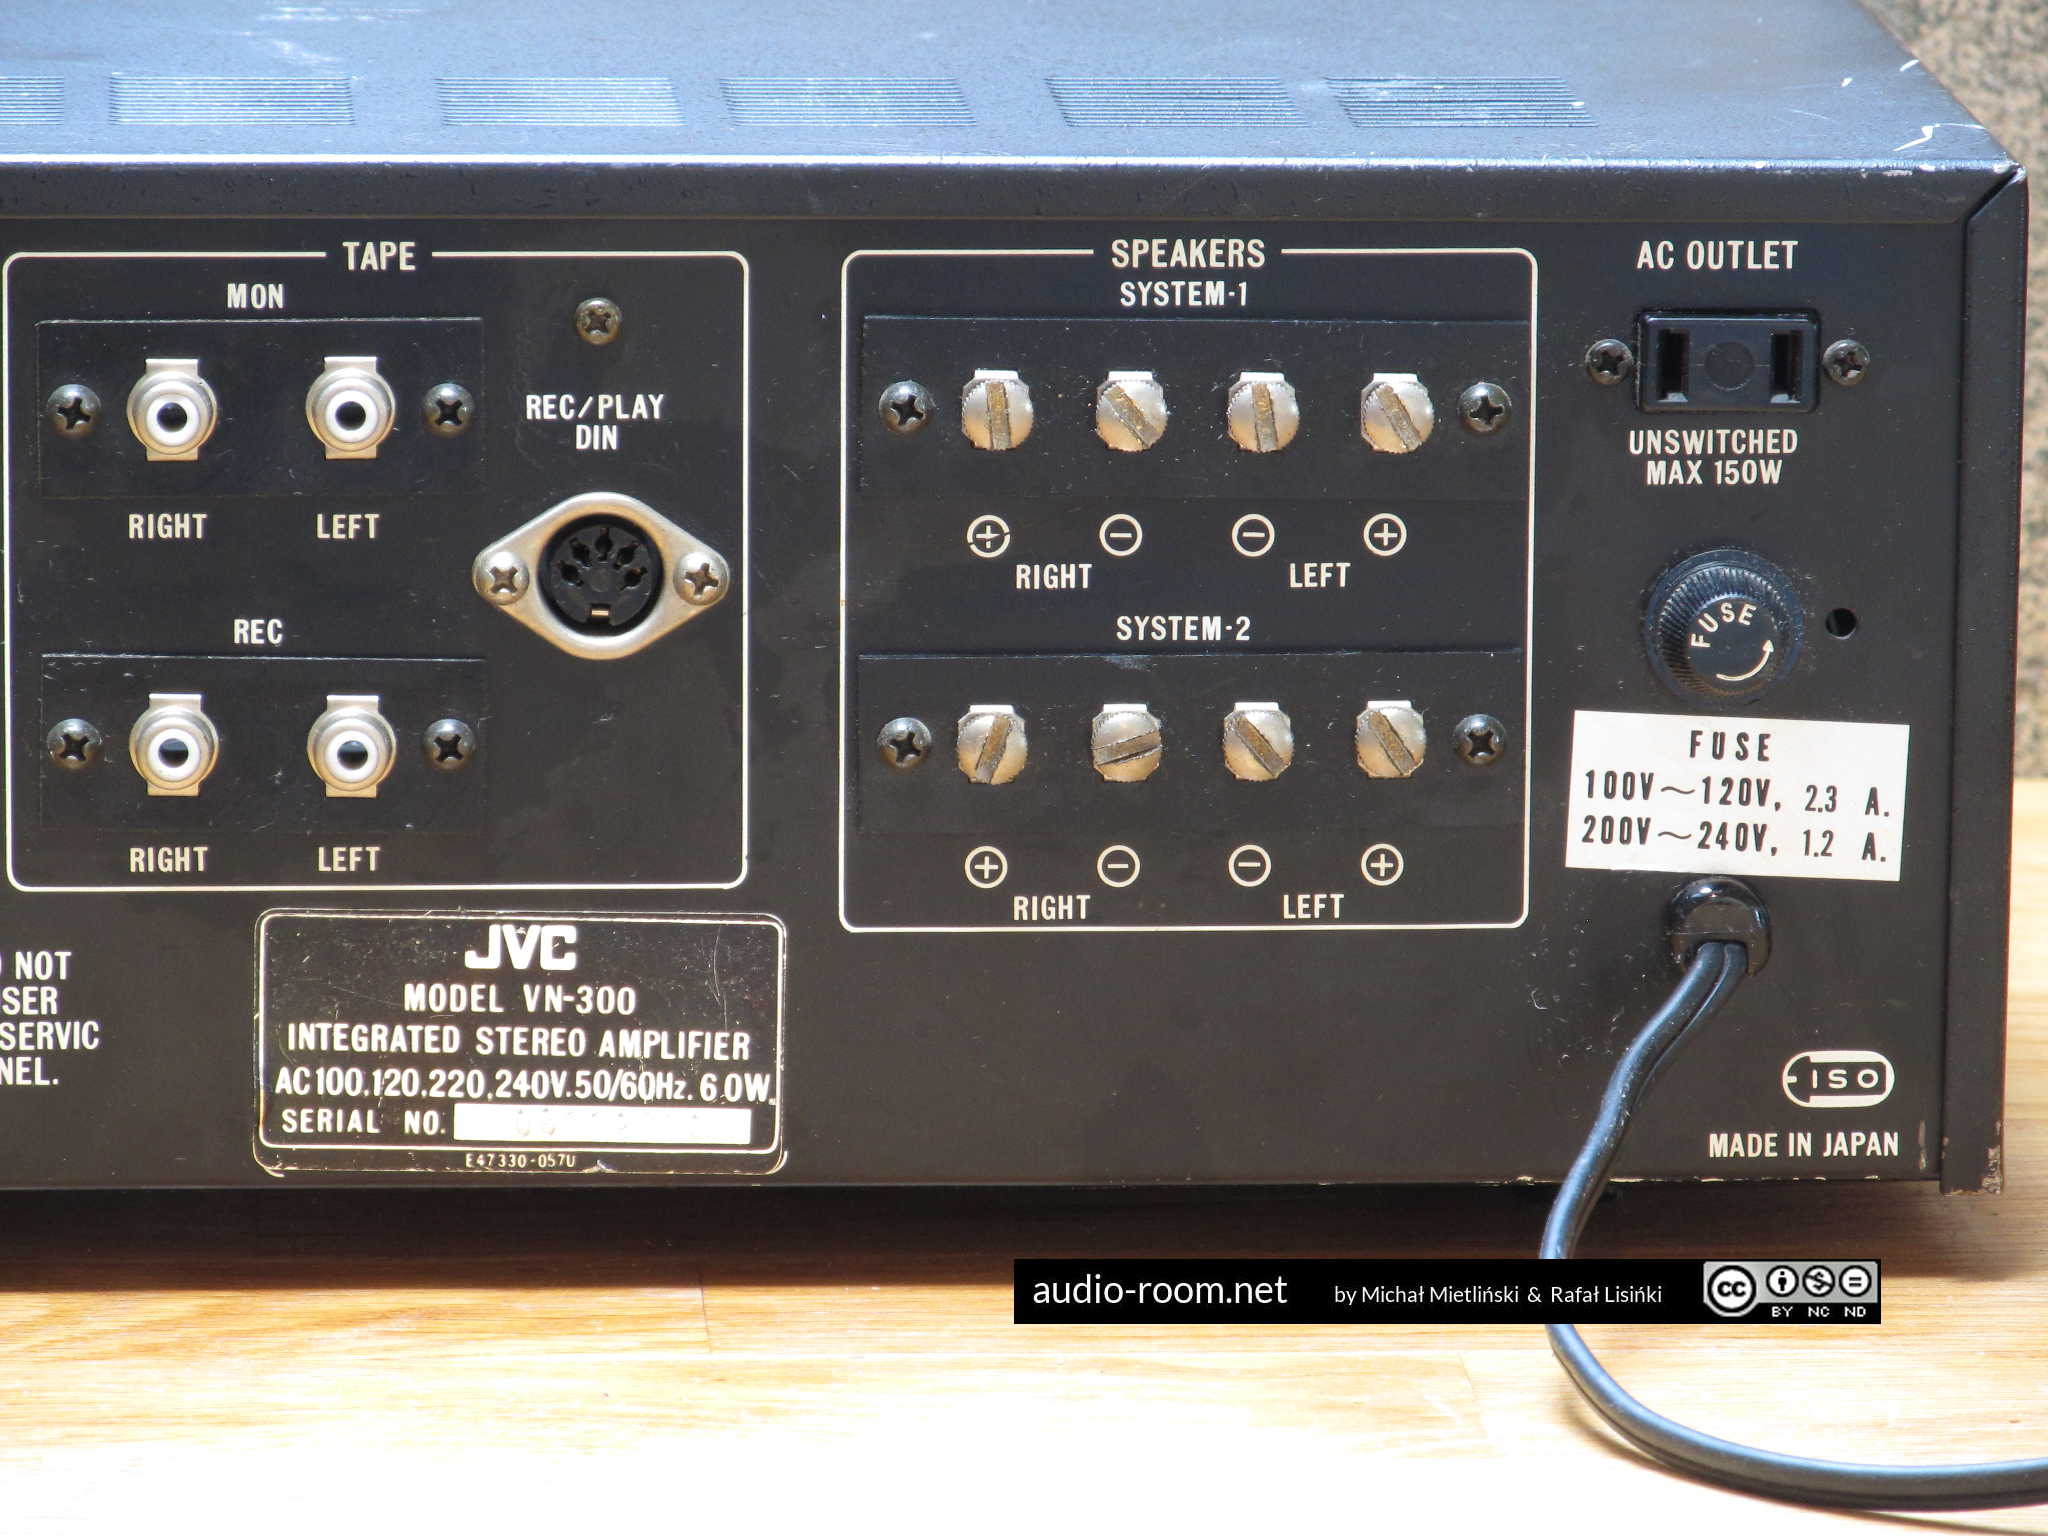 The AudioRoom beauty parlour: JVC VN-300 amplifier restoration |